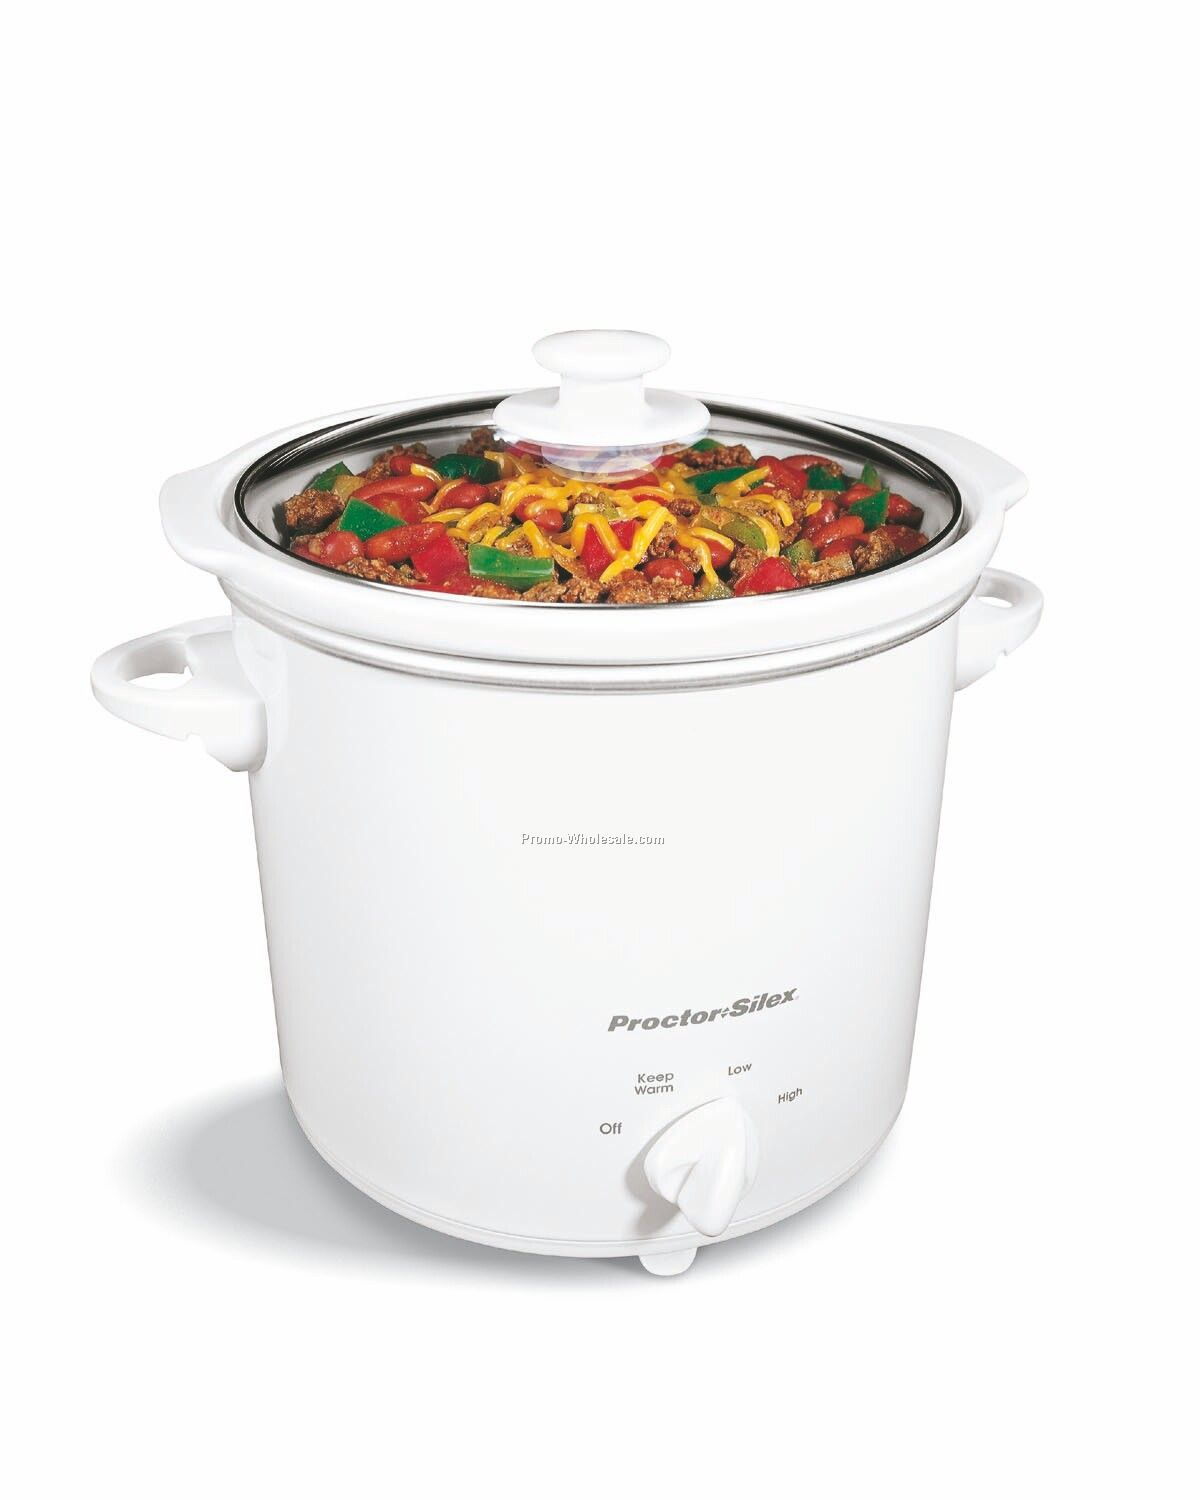 Proctor Silex Ps - 4 Qt Slow Cooker - White